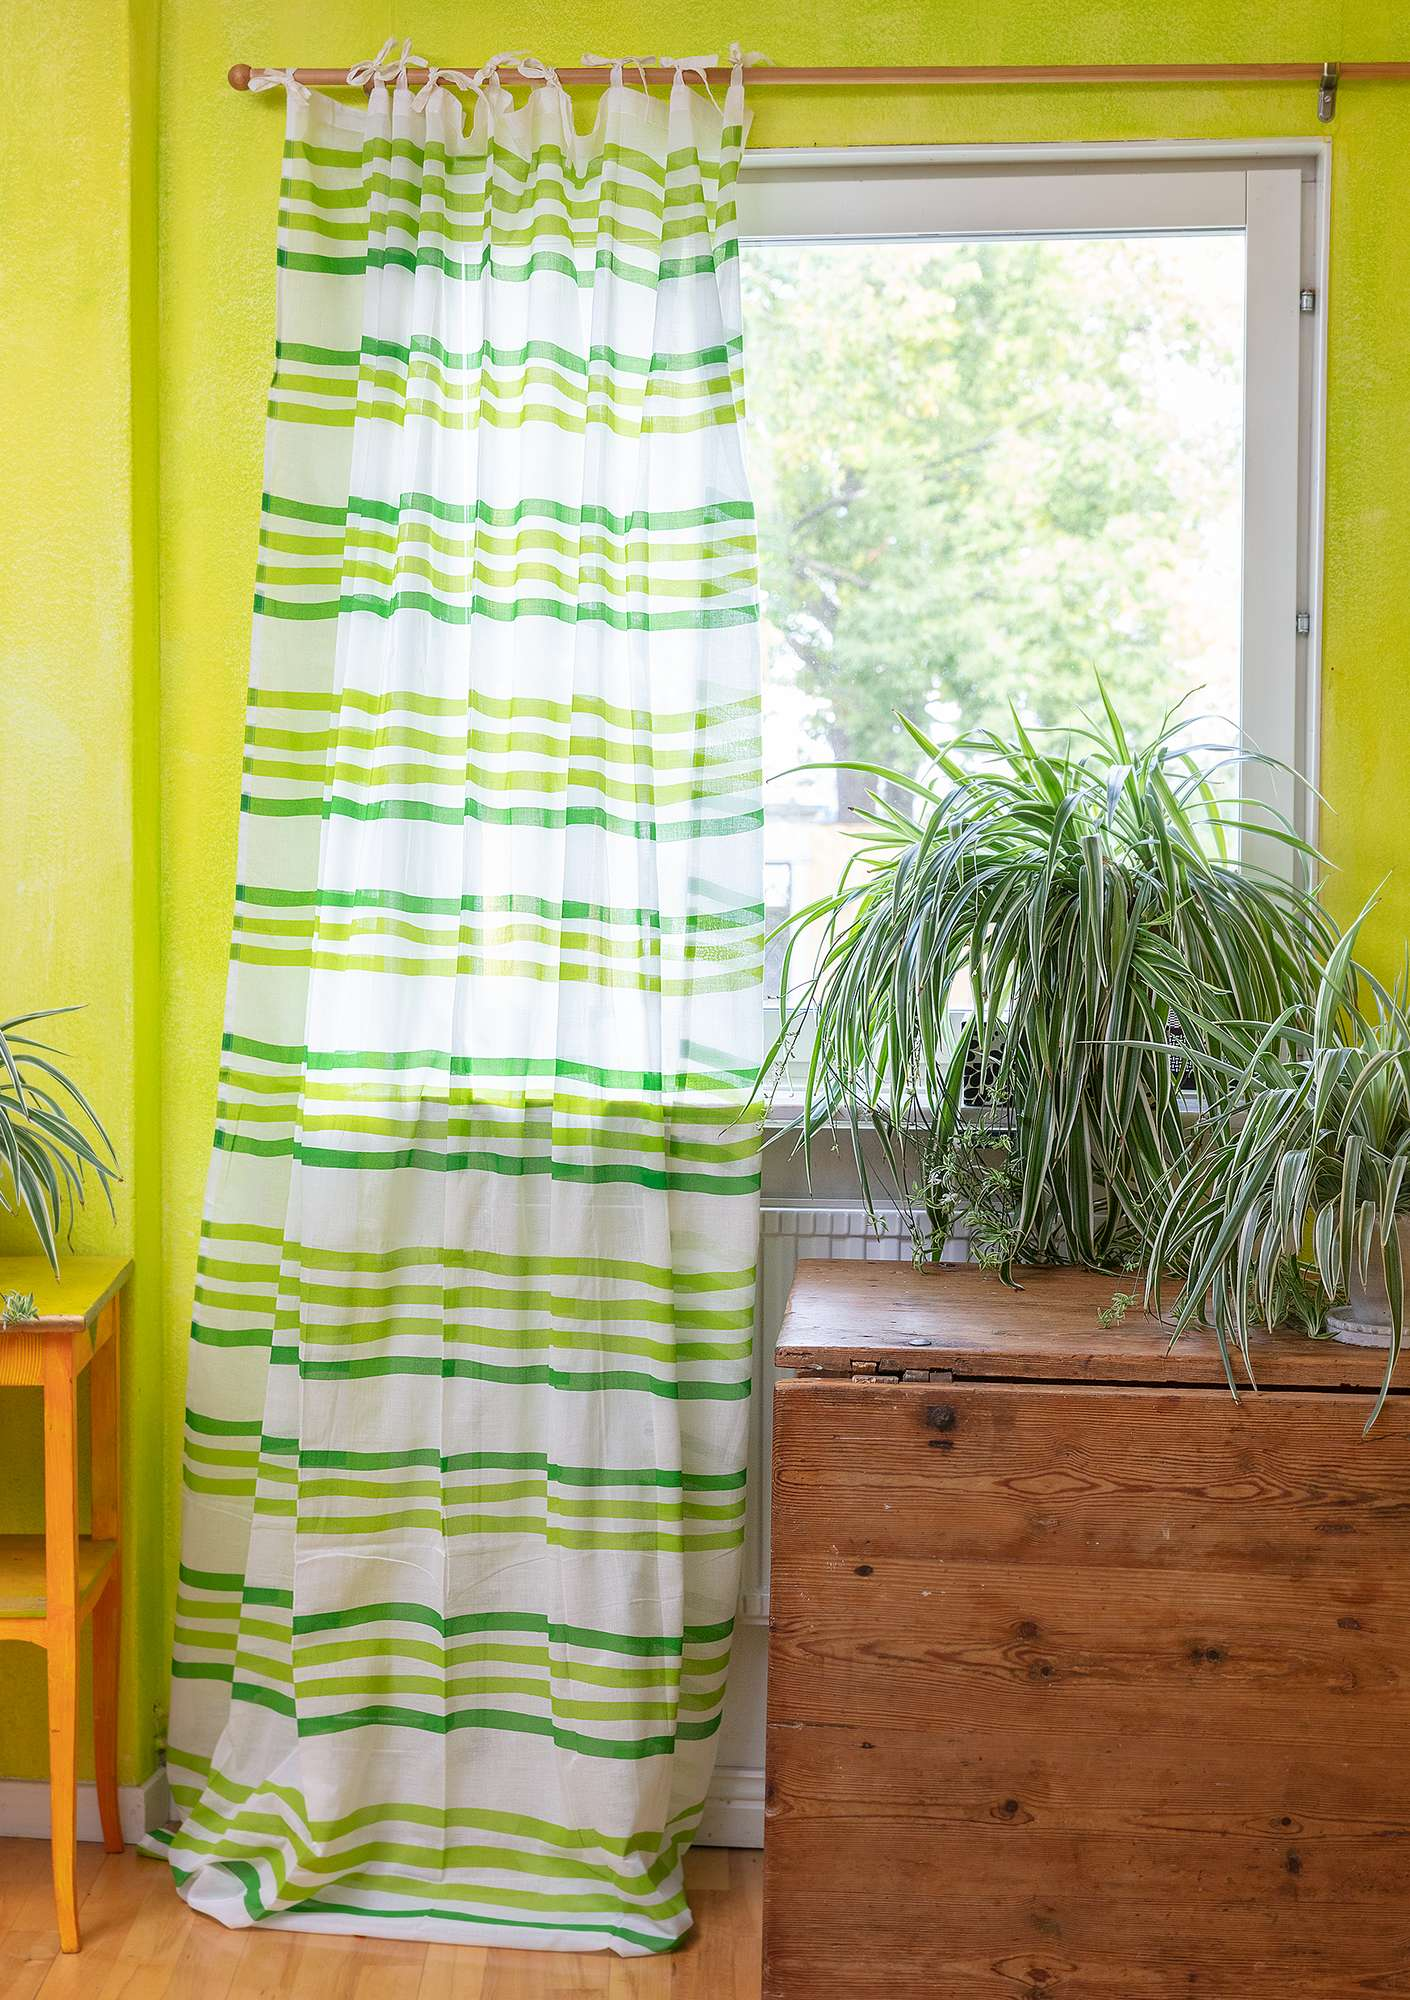 Balans curtain tropical green